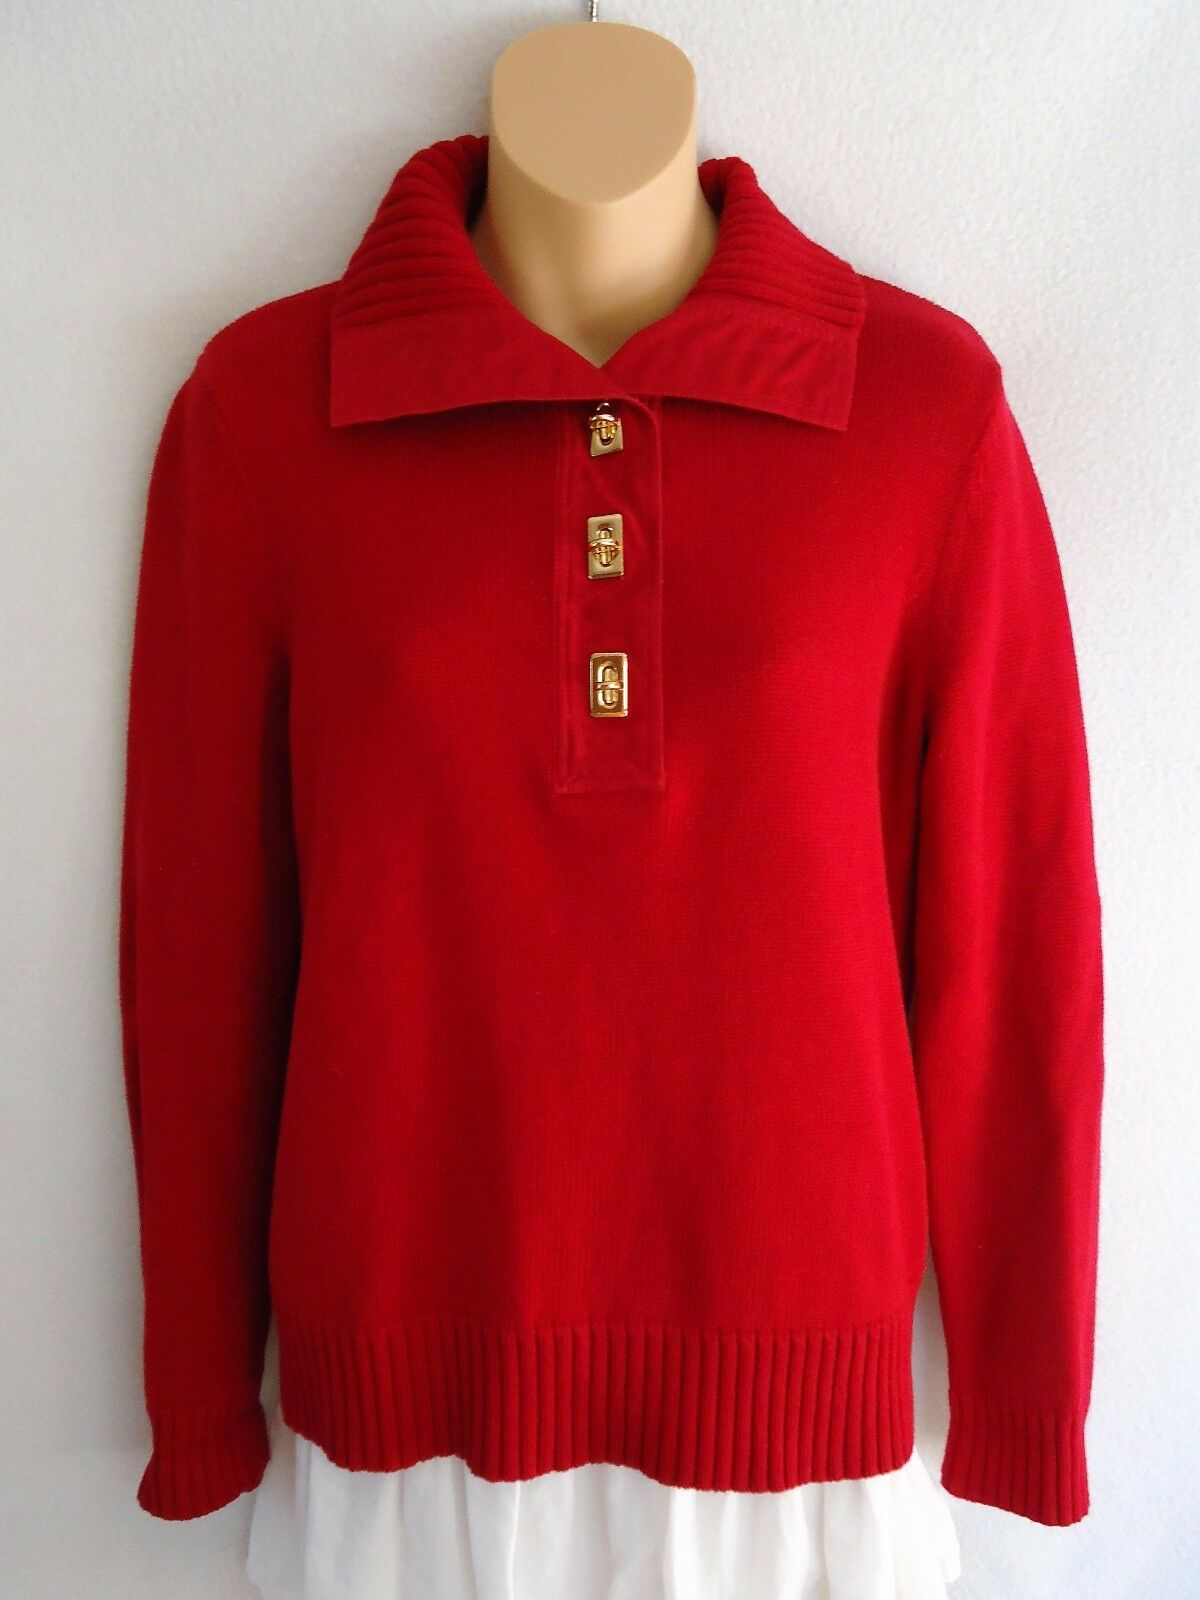 Ralph Lauren Women's Petite Medium PM Sweater Red gold Hardware Cotton